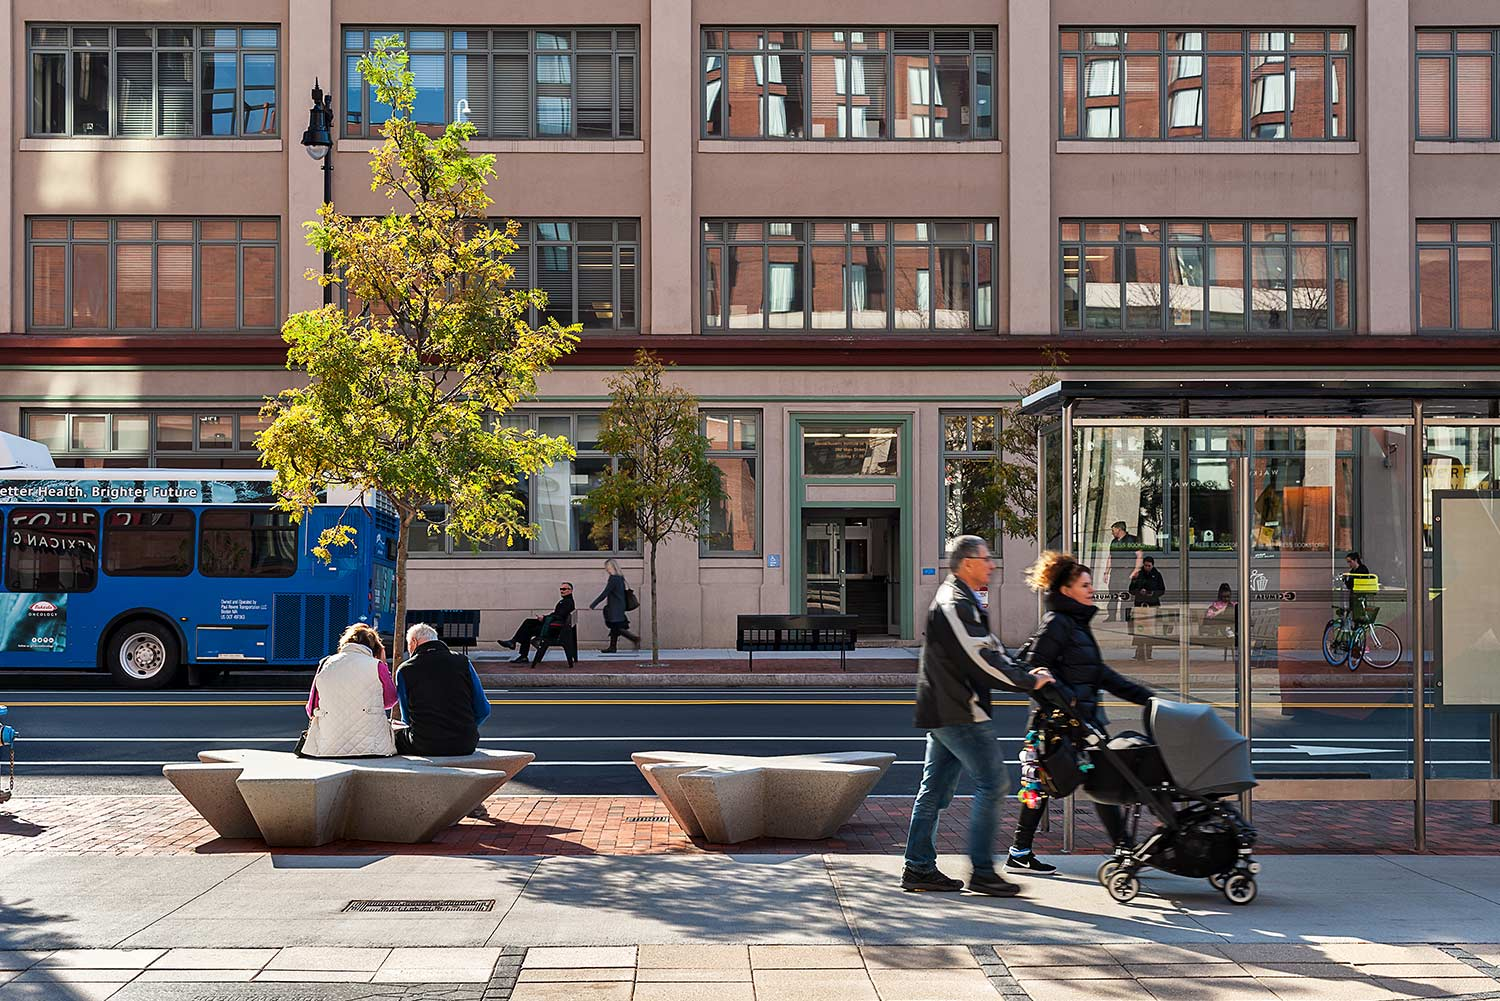 Kendall-Square_streetscape-seating-bus-stop_Klopfer-Martin.jpg